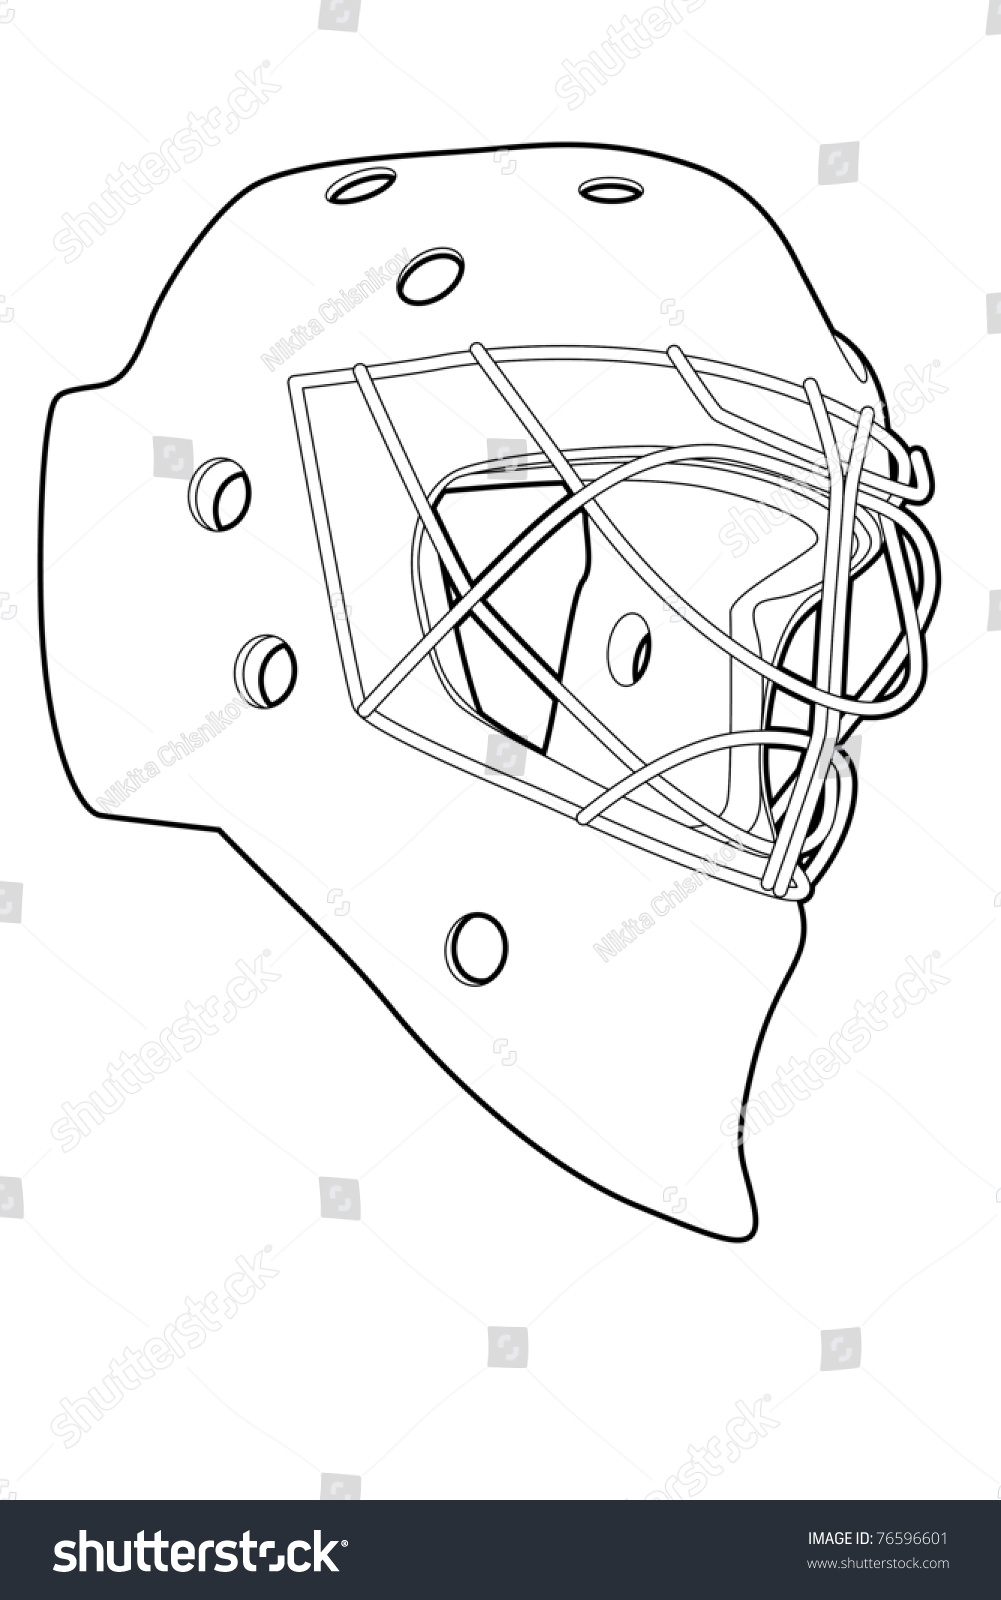 outline hockey mask on white background vector illustration 76596601 shutterstock. Black Bedroom Furniture Sets. Home Design Ideas